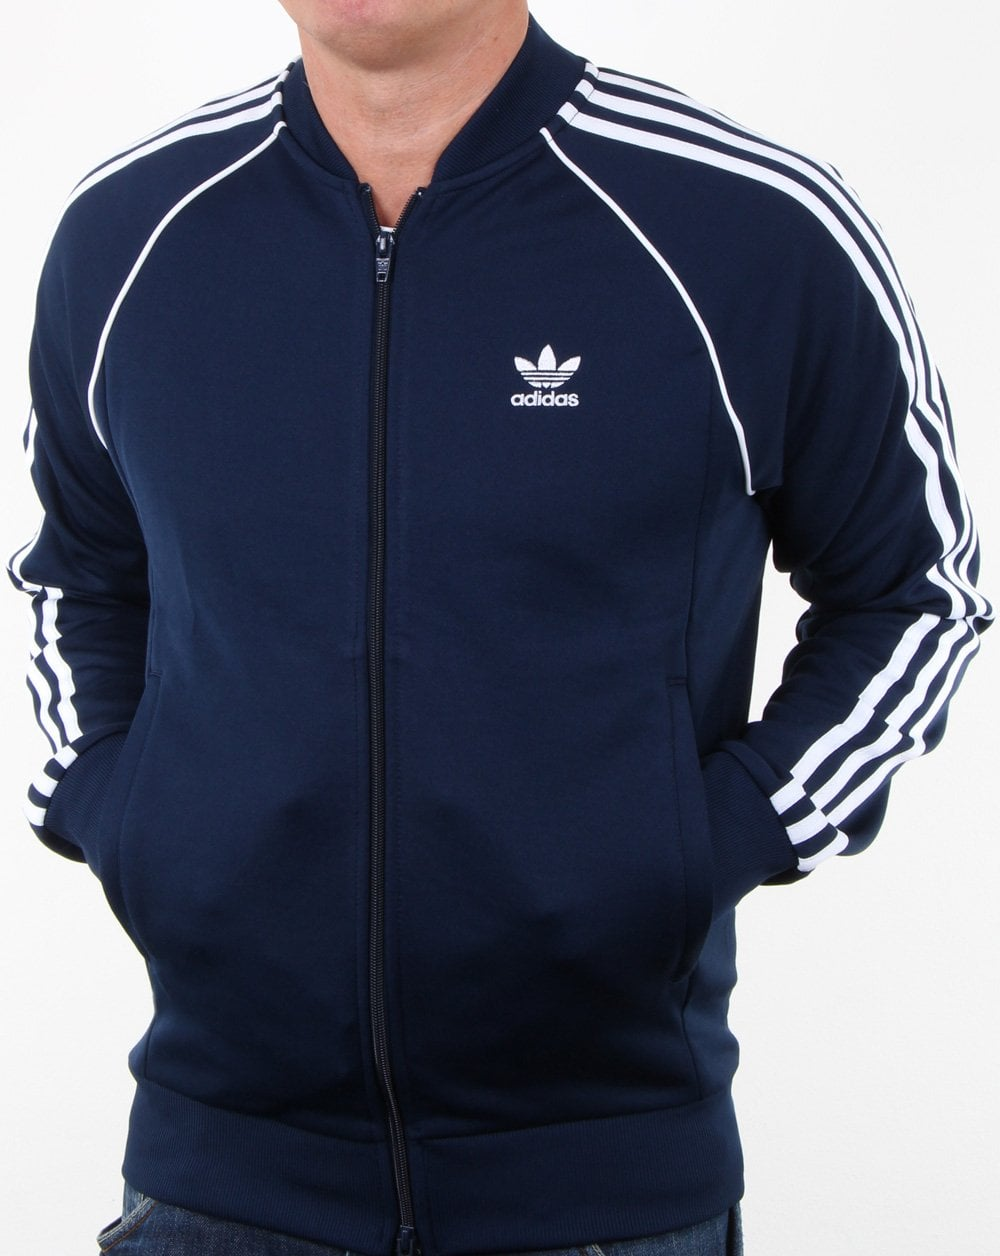 Adidas Originals Superstar Track Top Navywhite